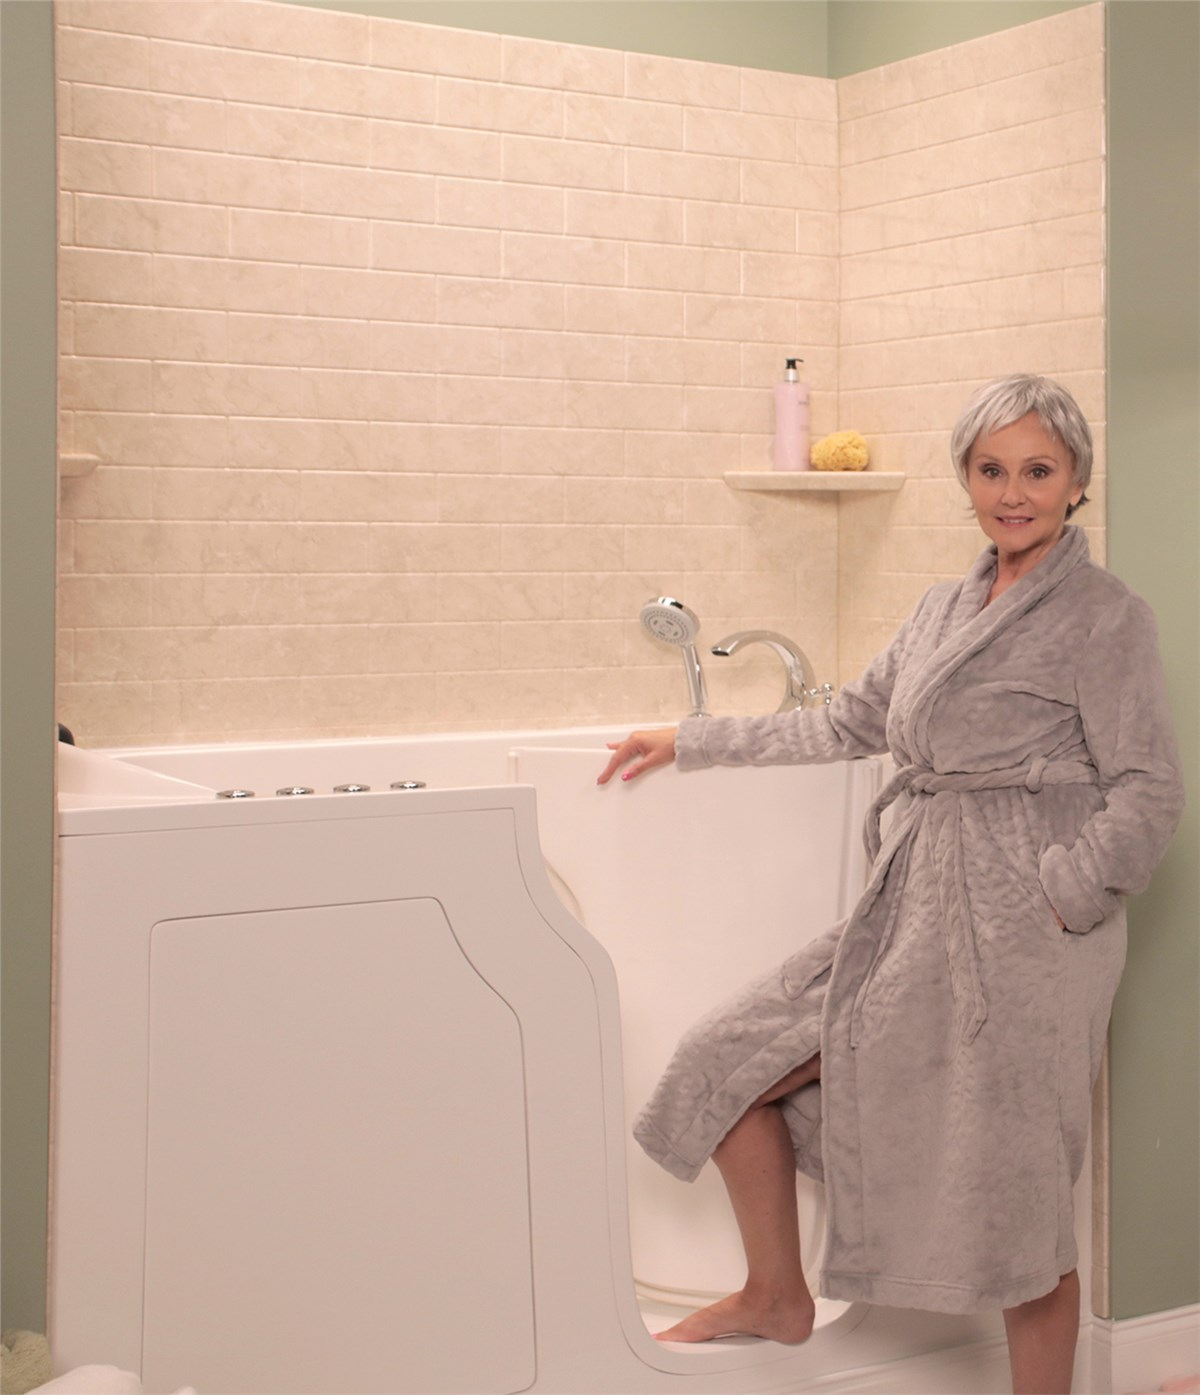 Walk-In Tubs | Walk-In Bathtubs for Elderly | Handicap Accesible ...